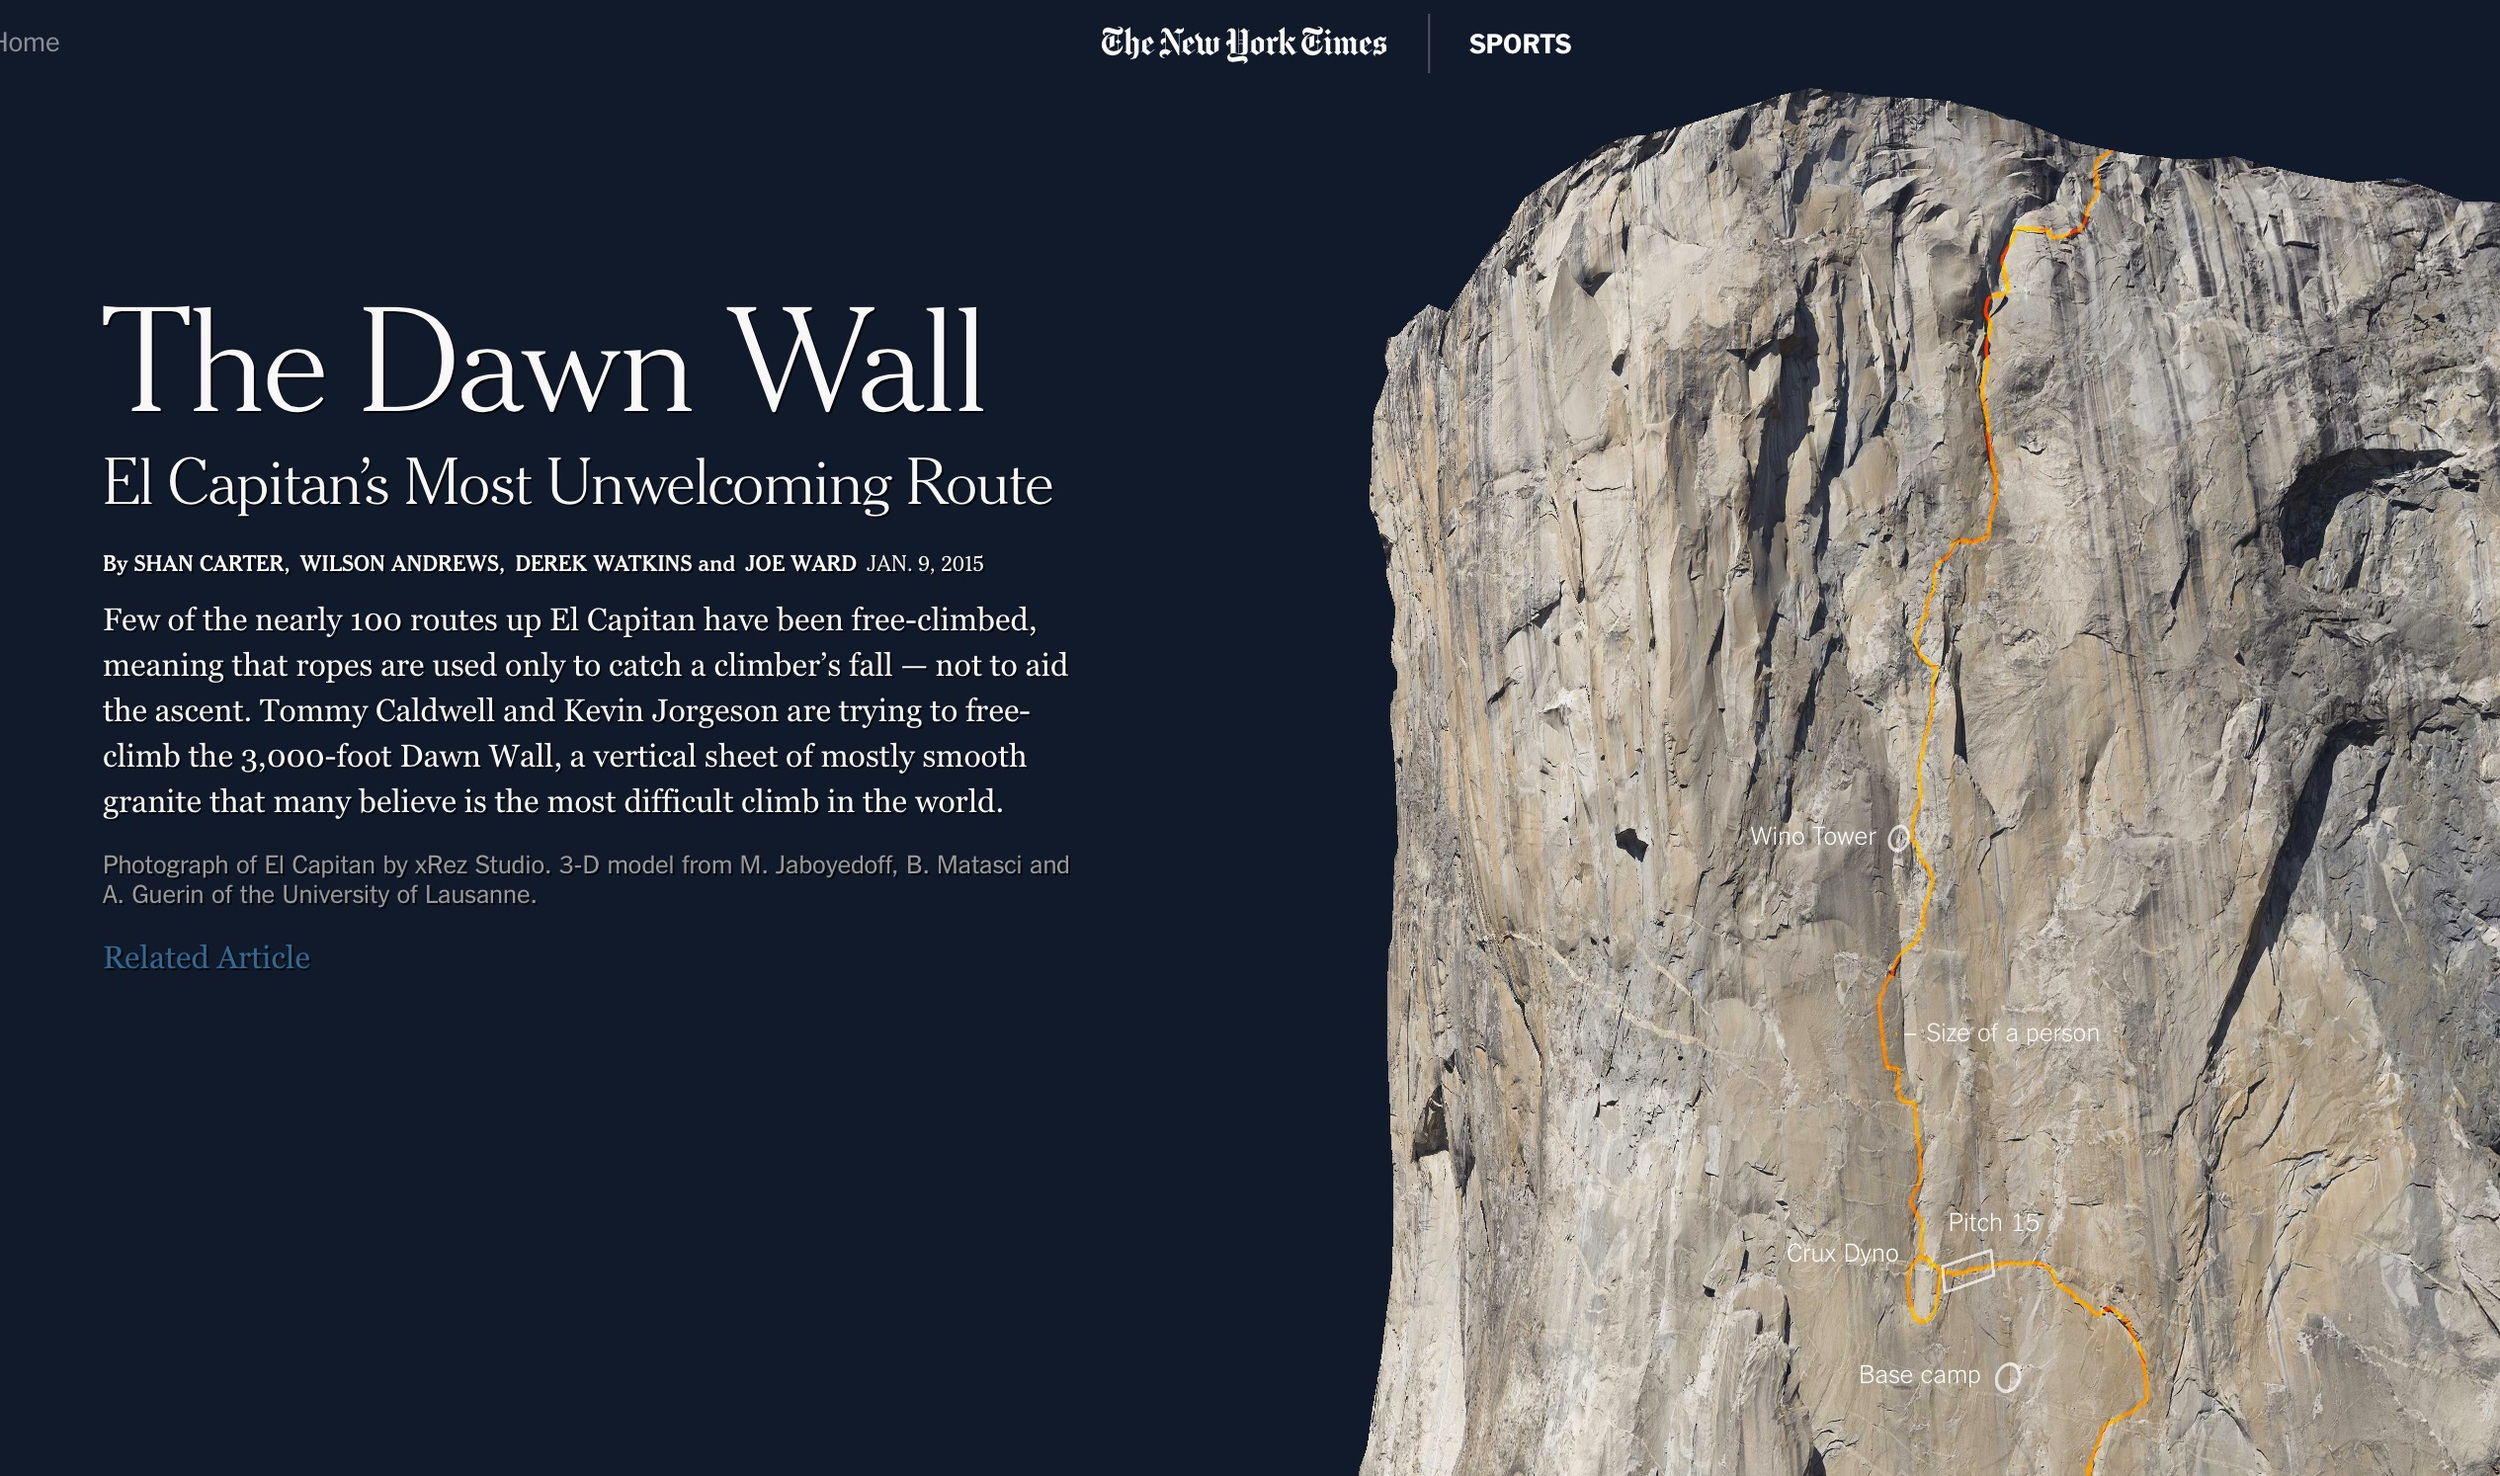 The_Dawn_Wall__El_Capitan's_Most_Unwelcoming_Route_-_NYTimes_com.jpg